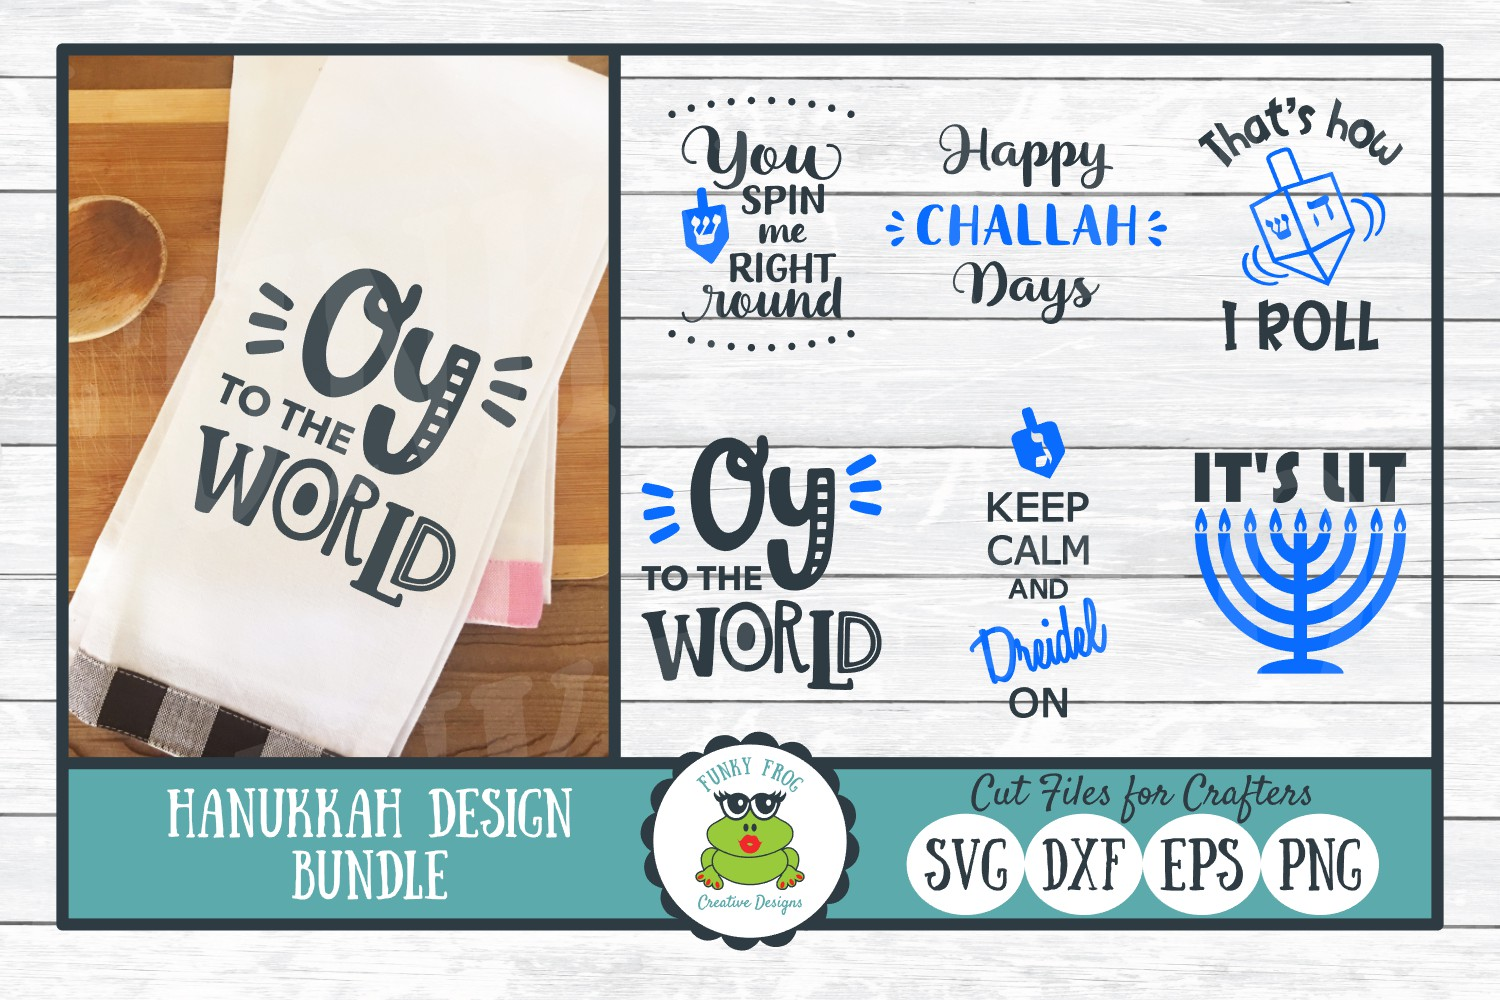 Download Free Hanukkah Design Bundle Graphic By Funkyfrogcreativedesigns for Cricut Explore, Silhouette and other cutting machines.